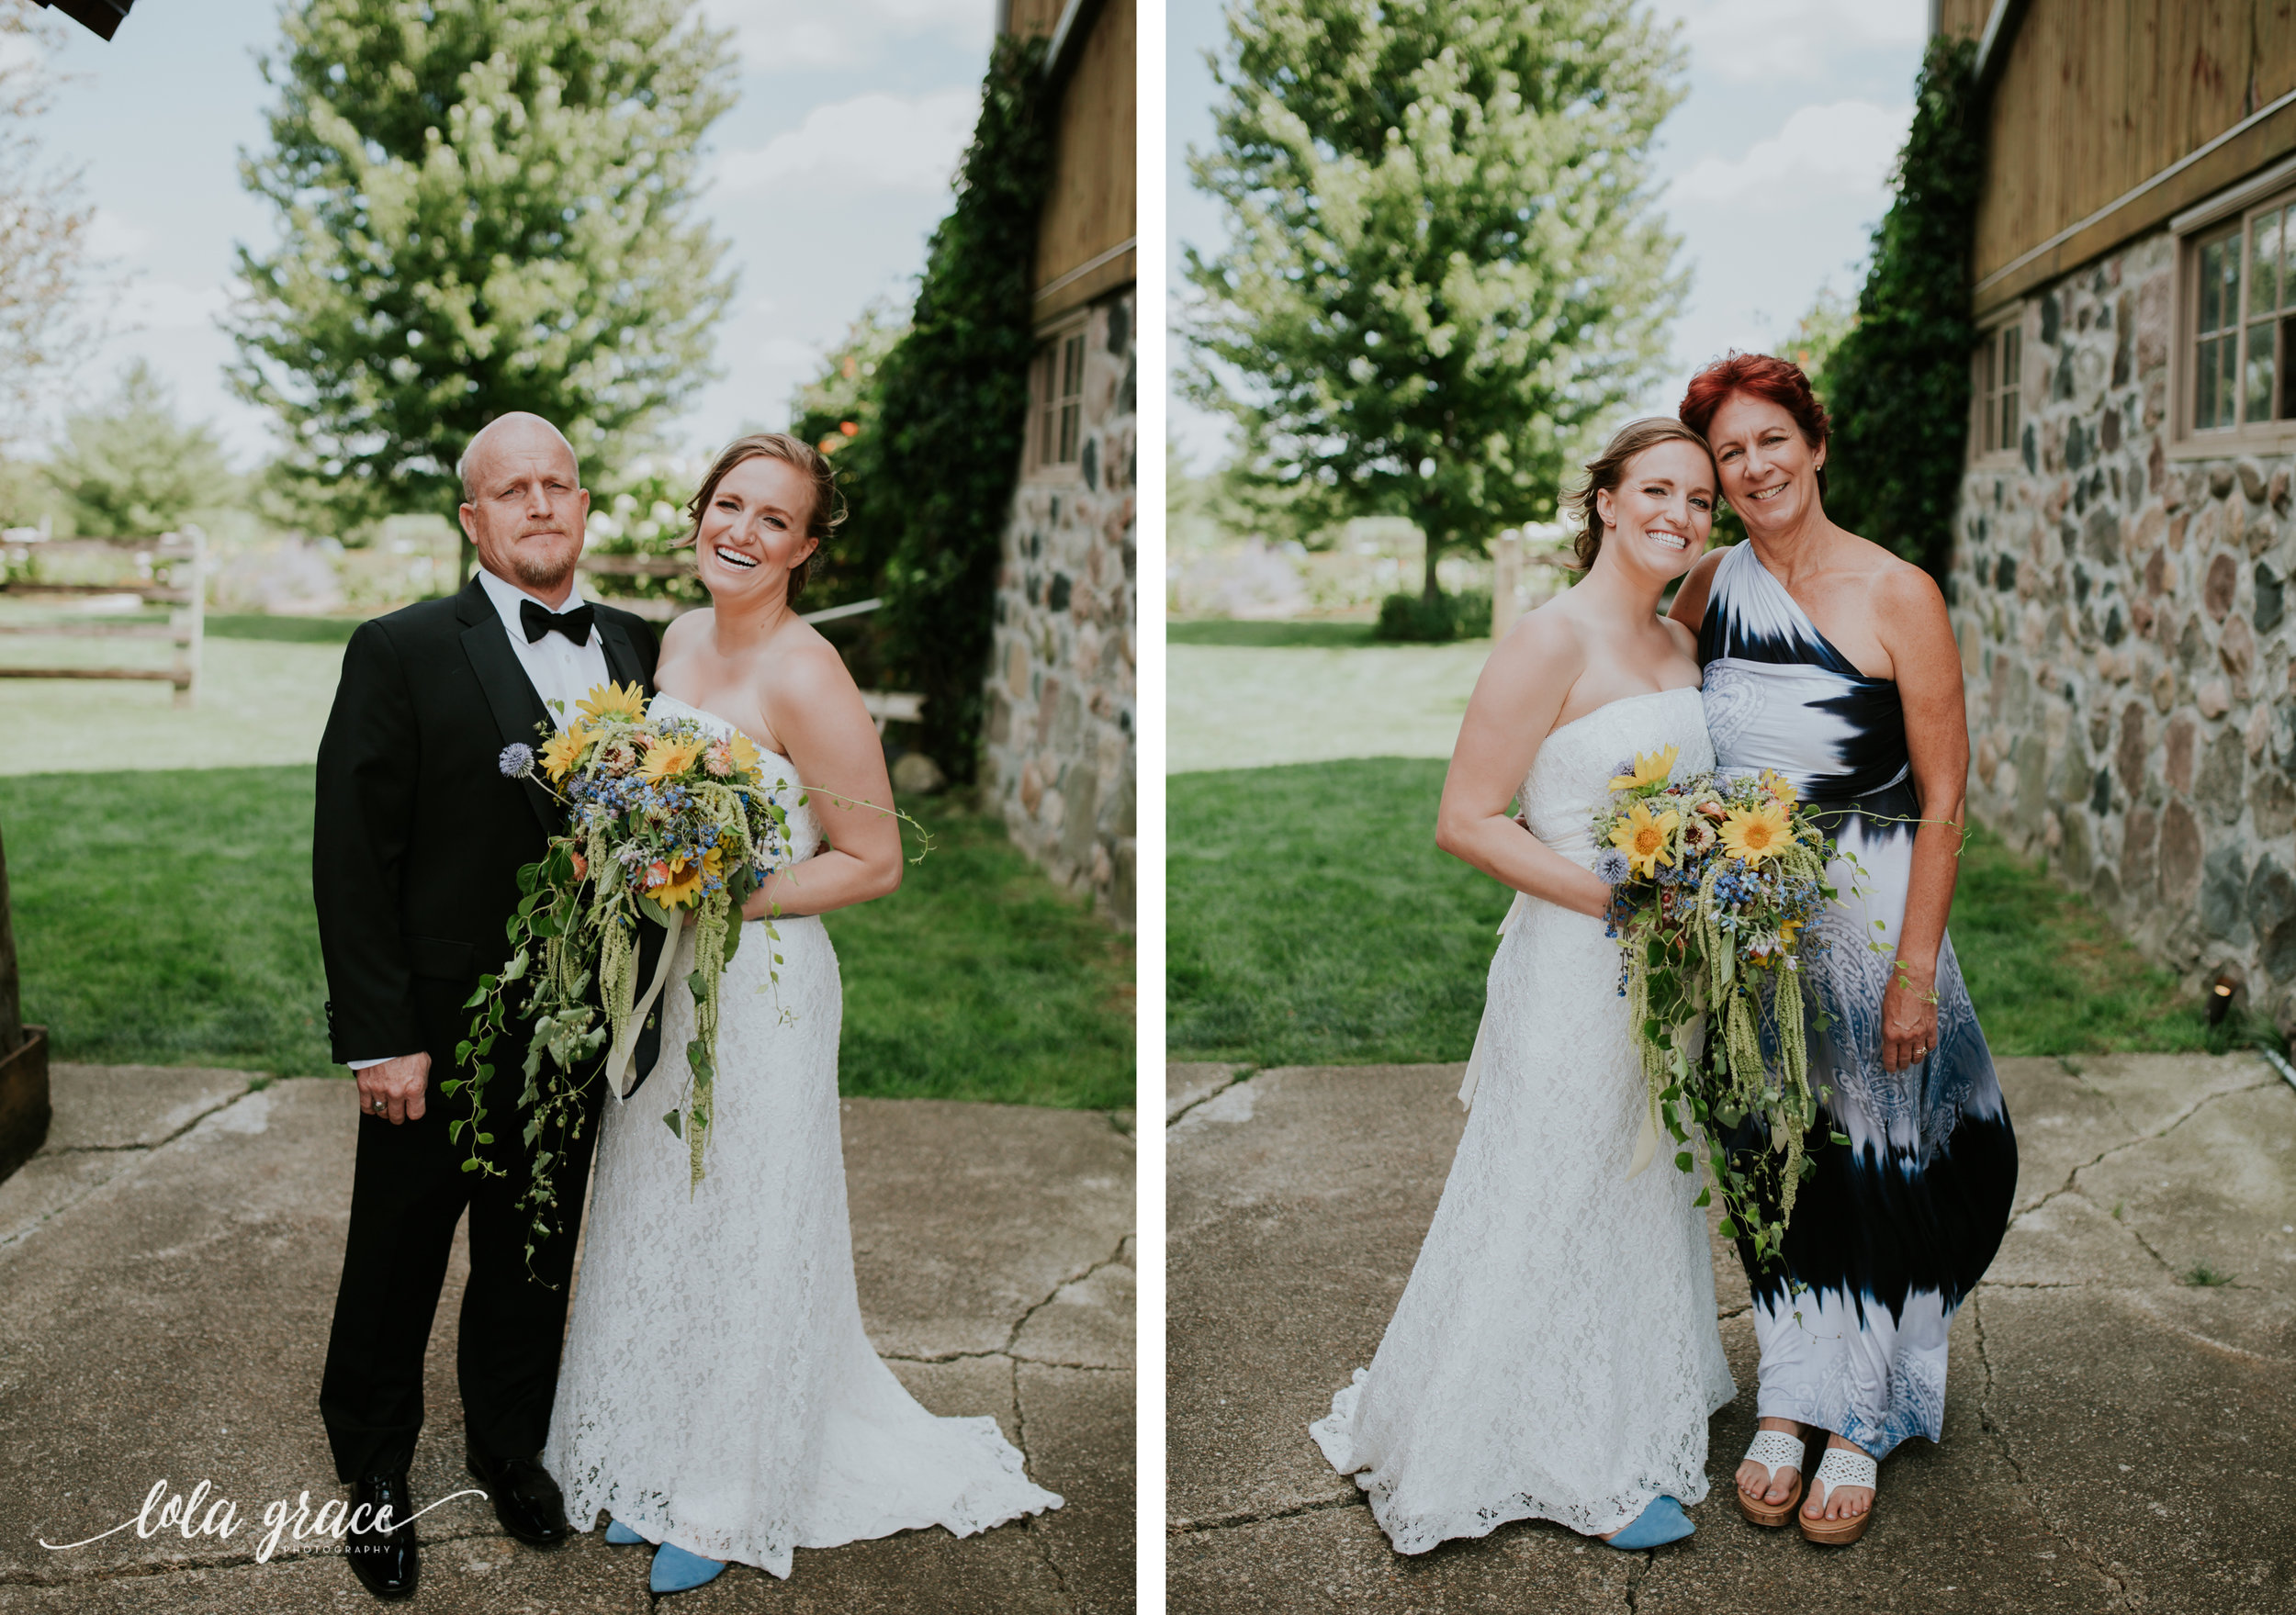 summer-wedding-at-misty-farms-ann-arbor-42.jpg